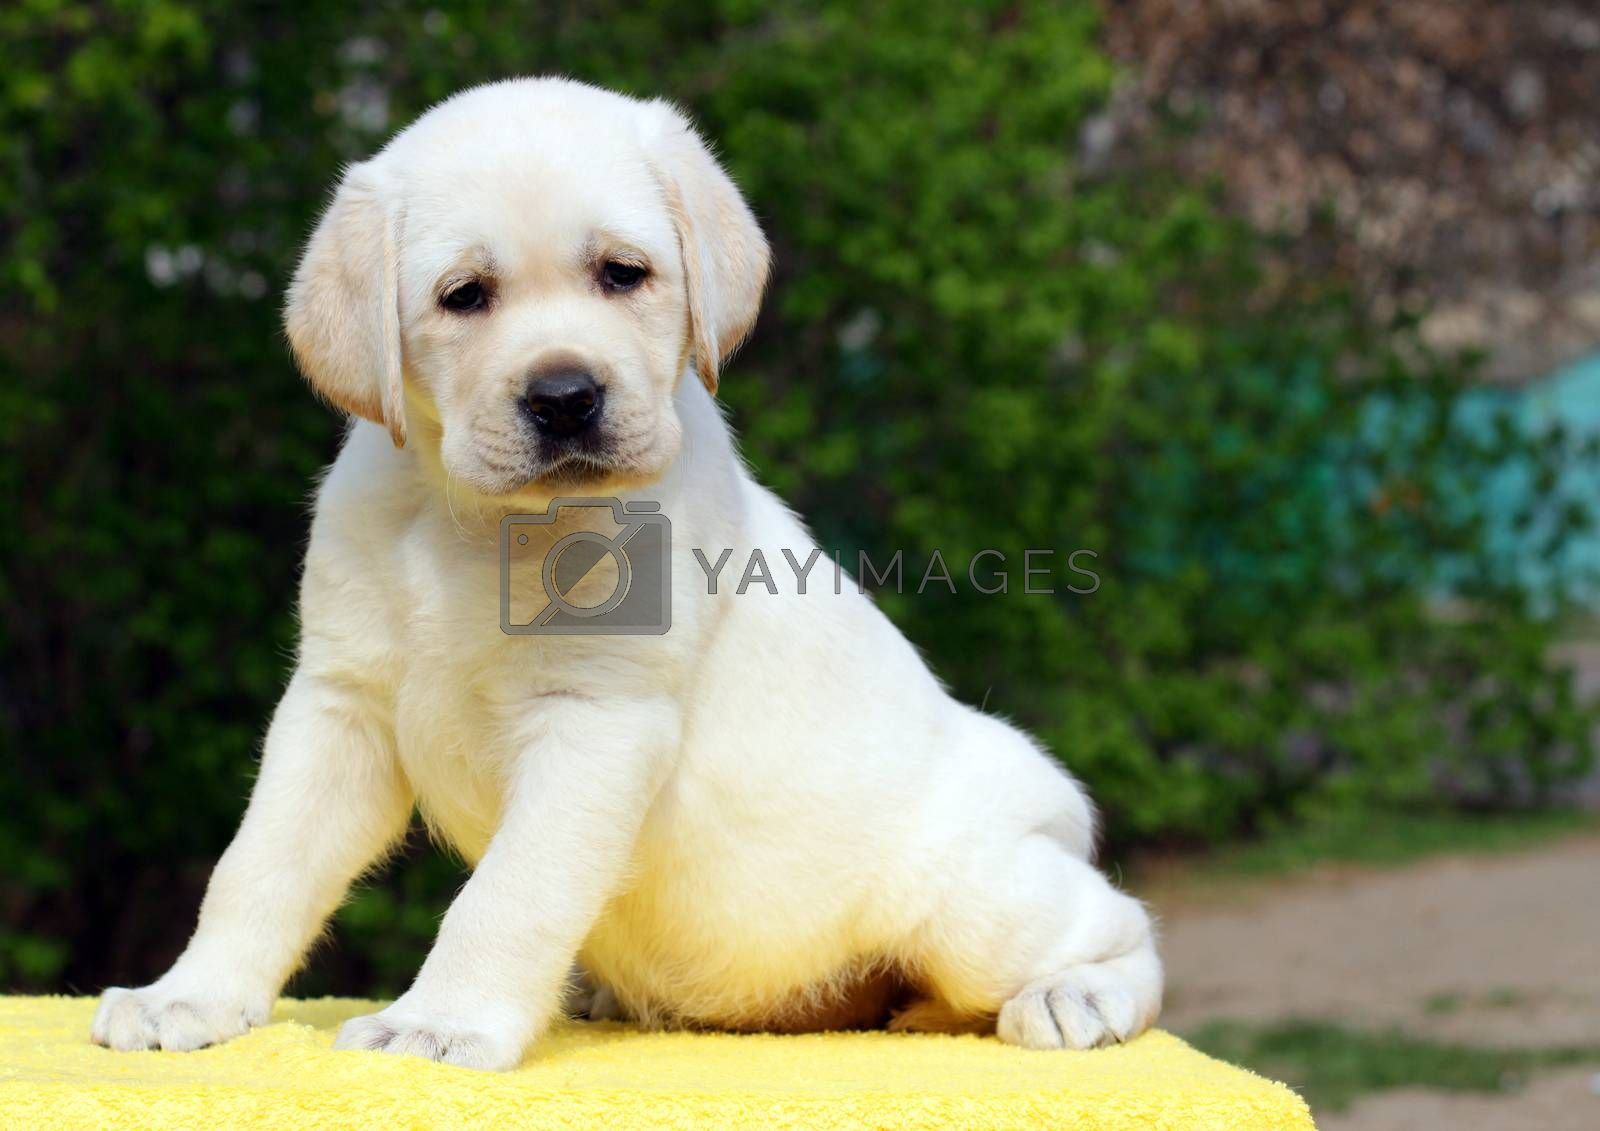 Royalty free image of labrador puppy on the yellow background by Yarvet